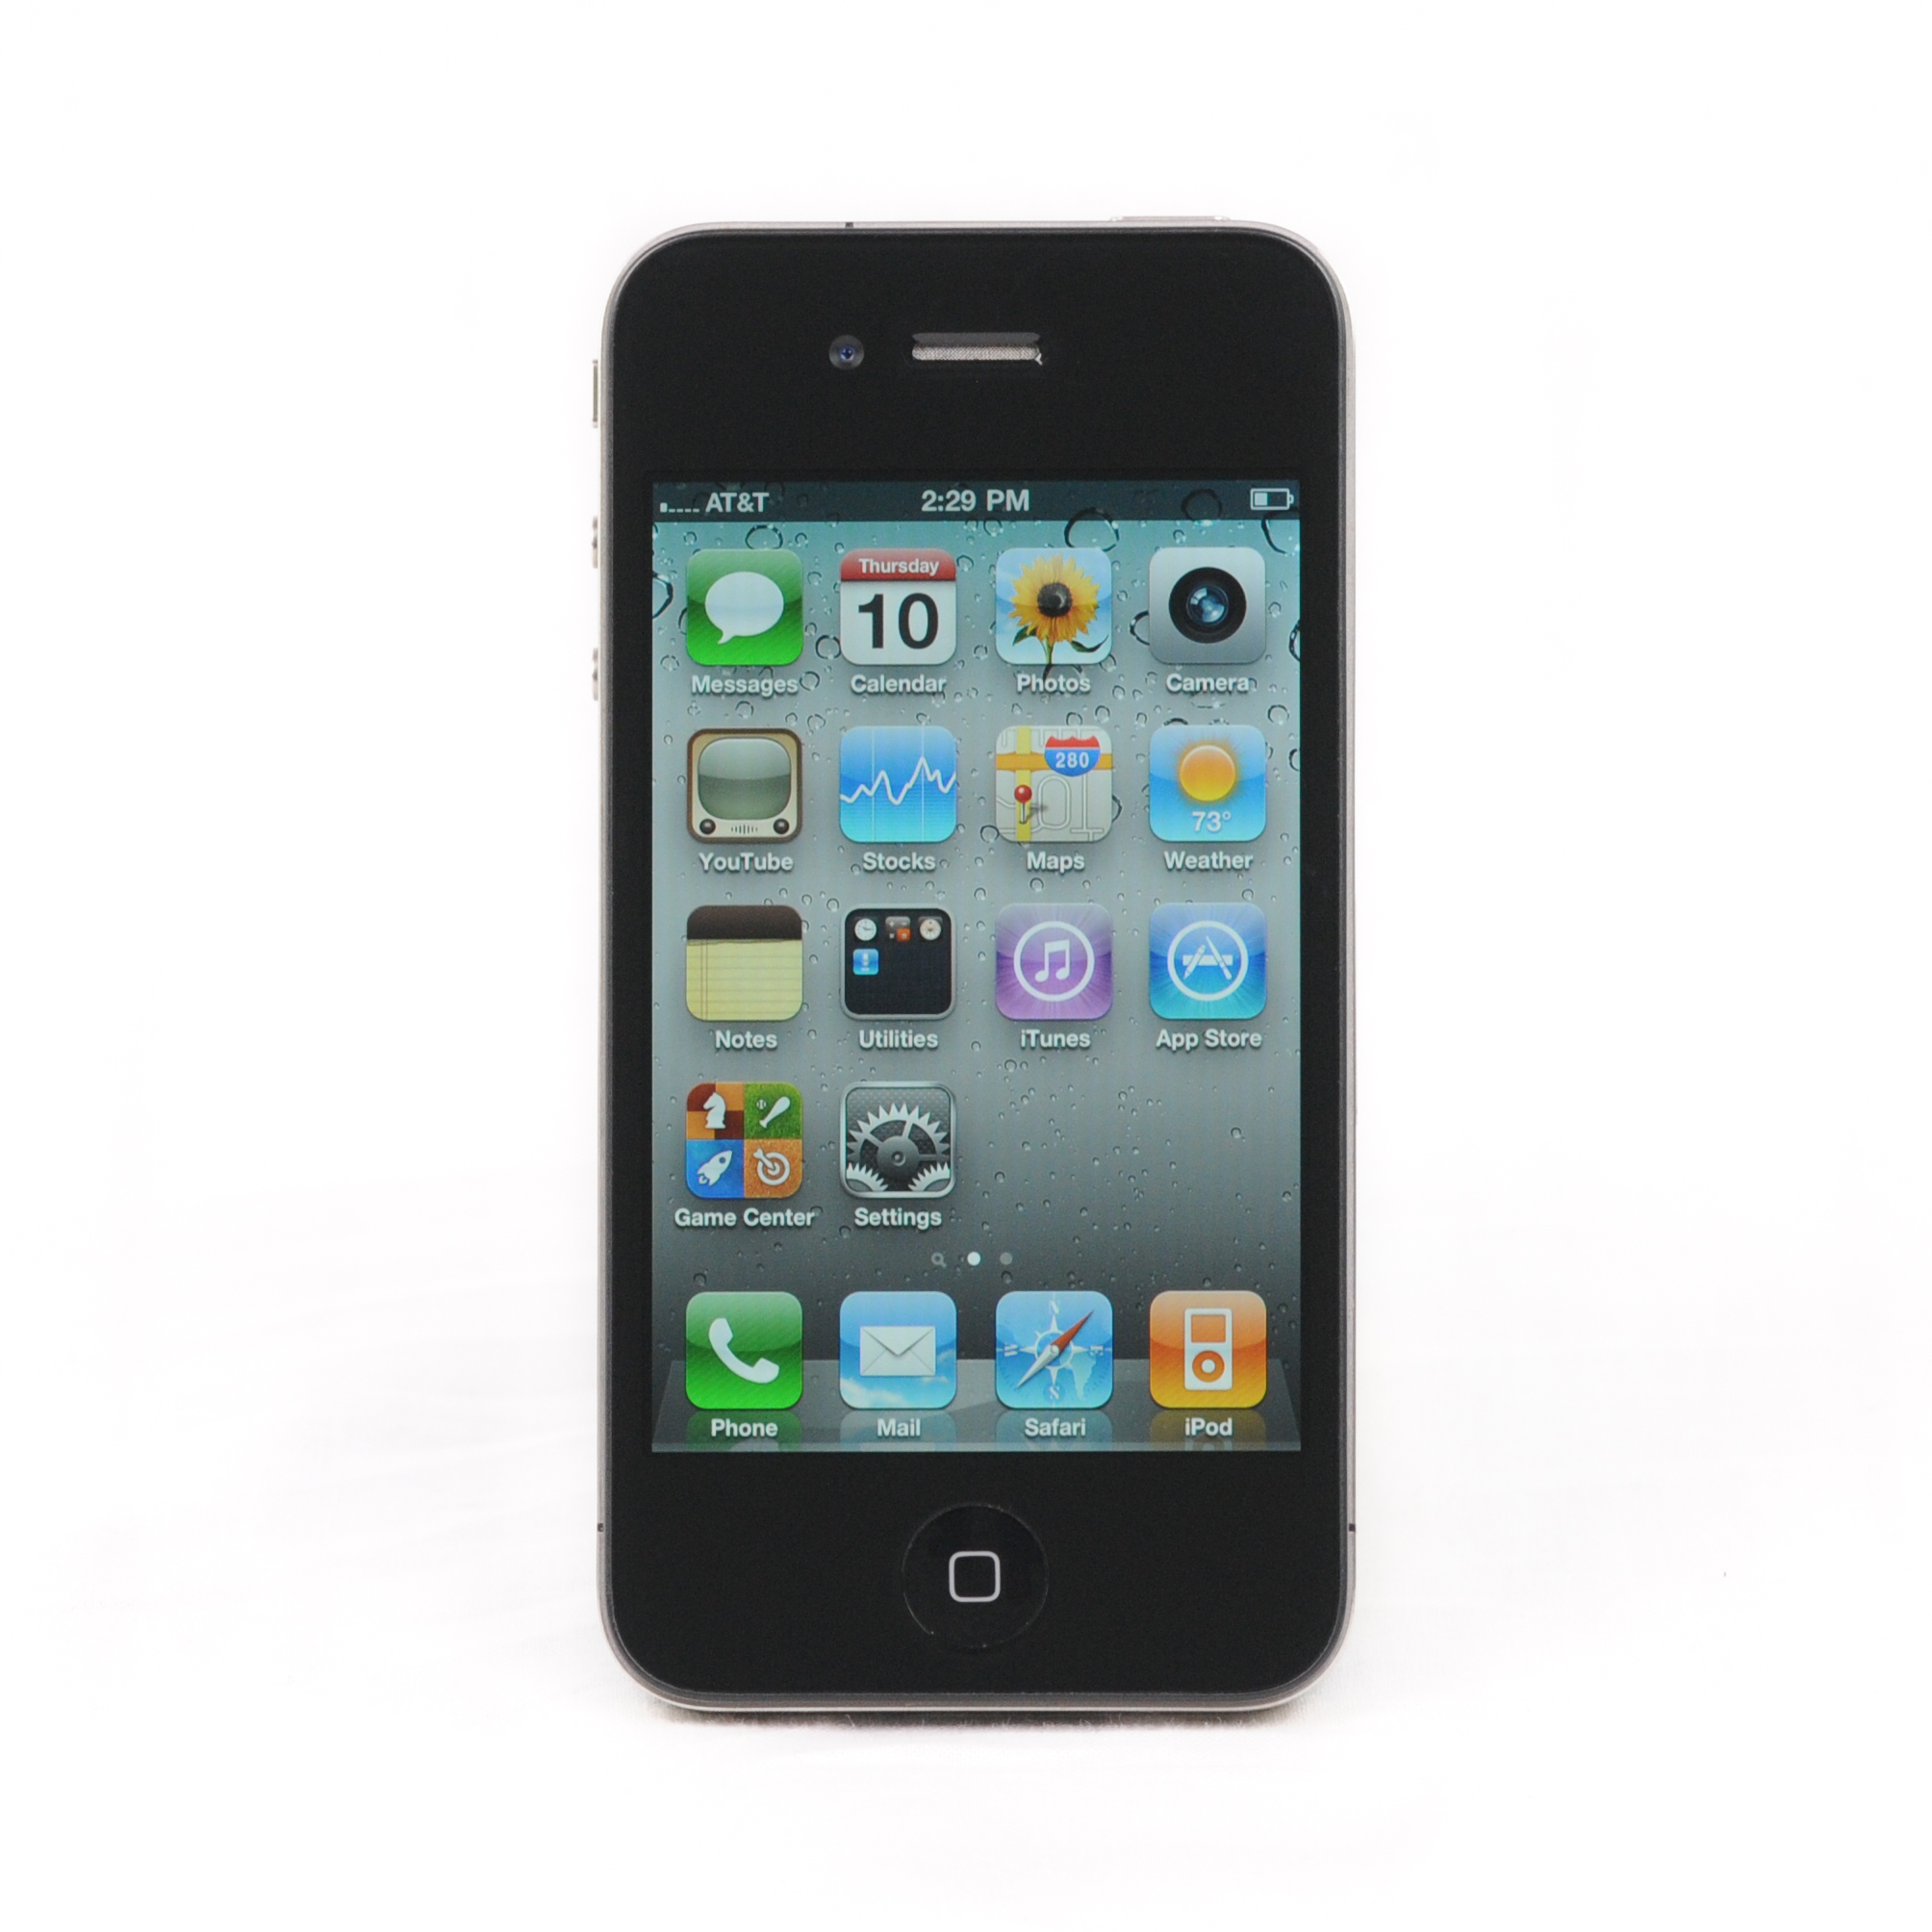 Iphone 4 8gb Libre Pin Iphone 4 8gb Black On Pinterest